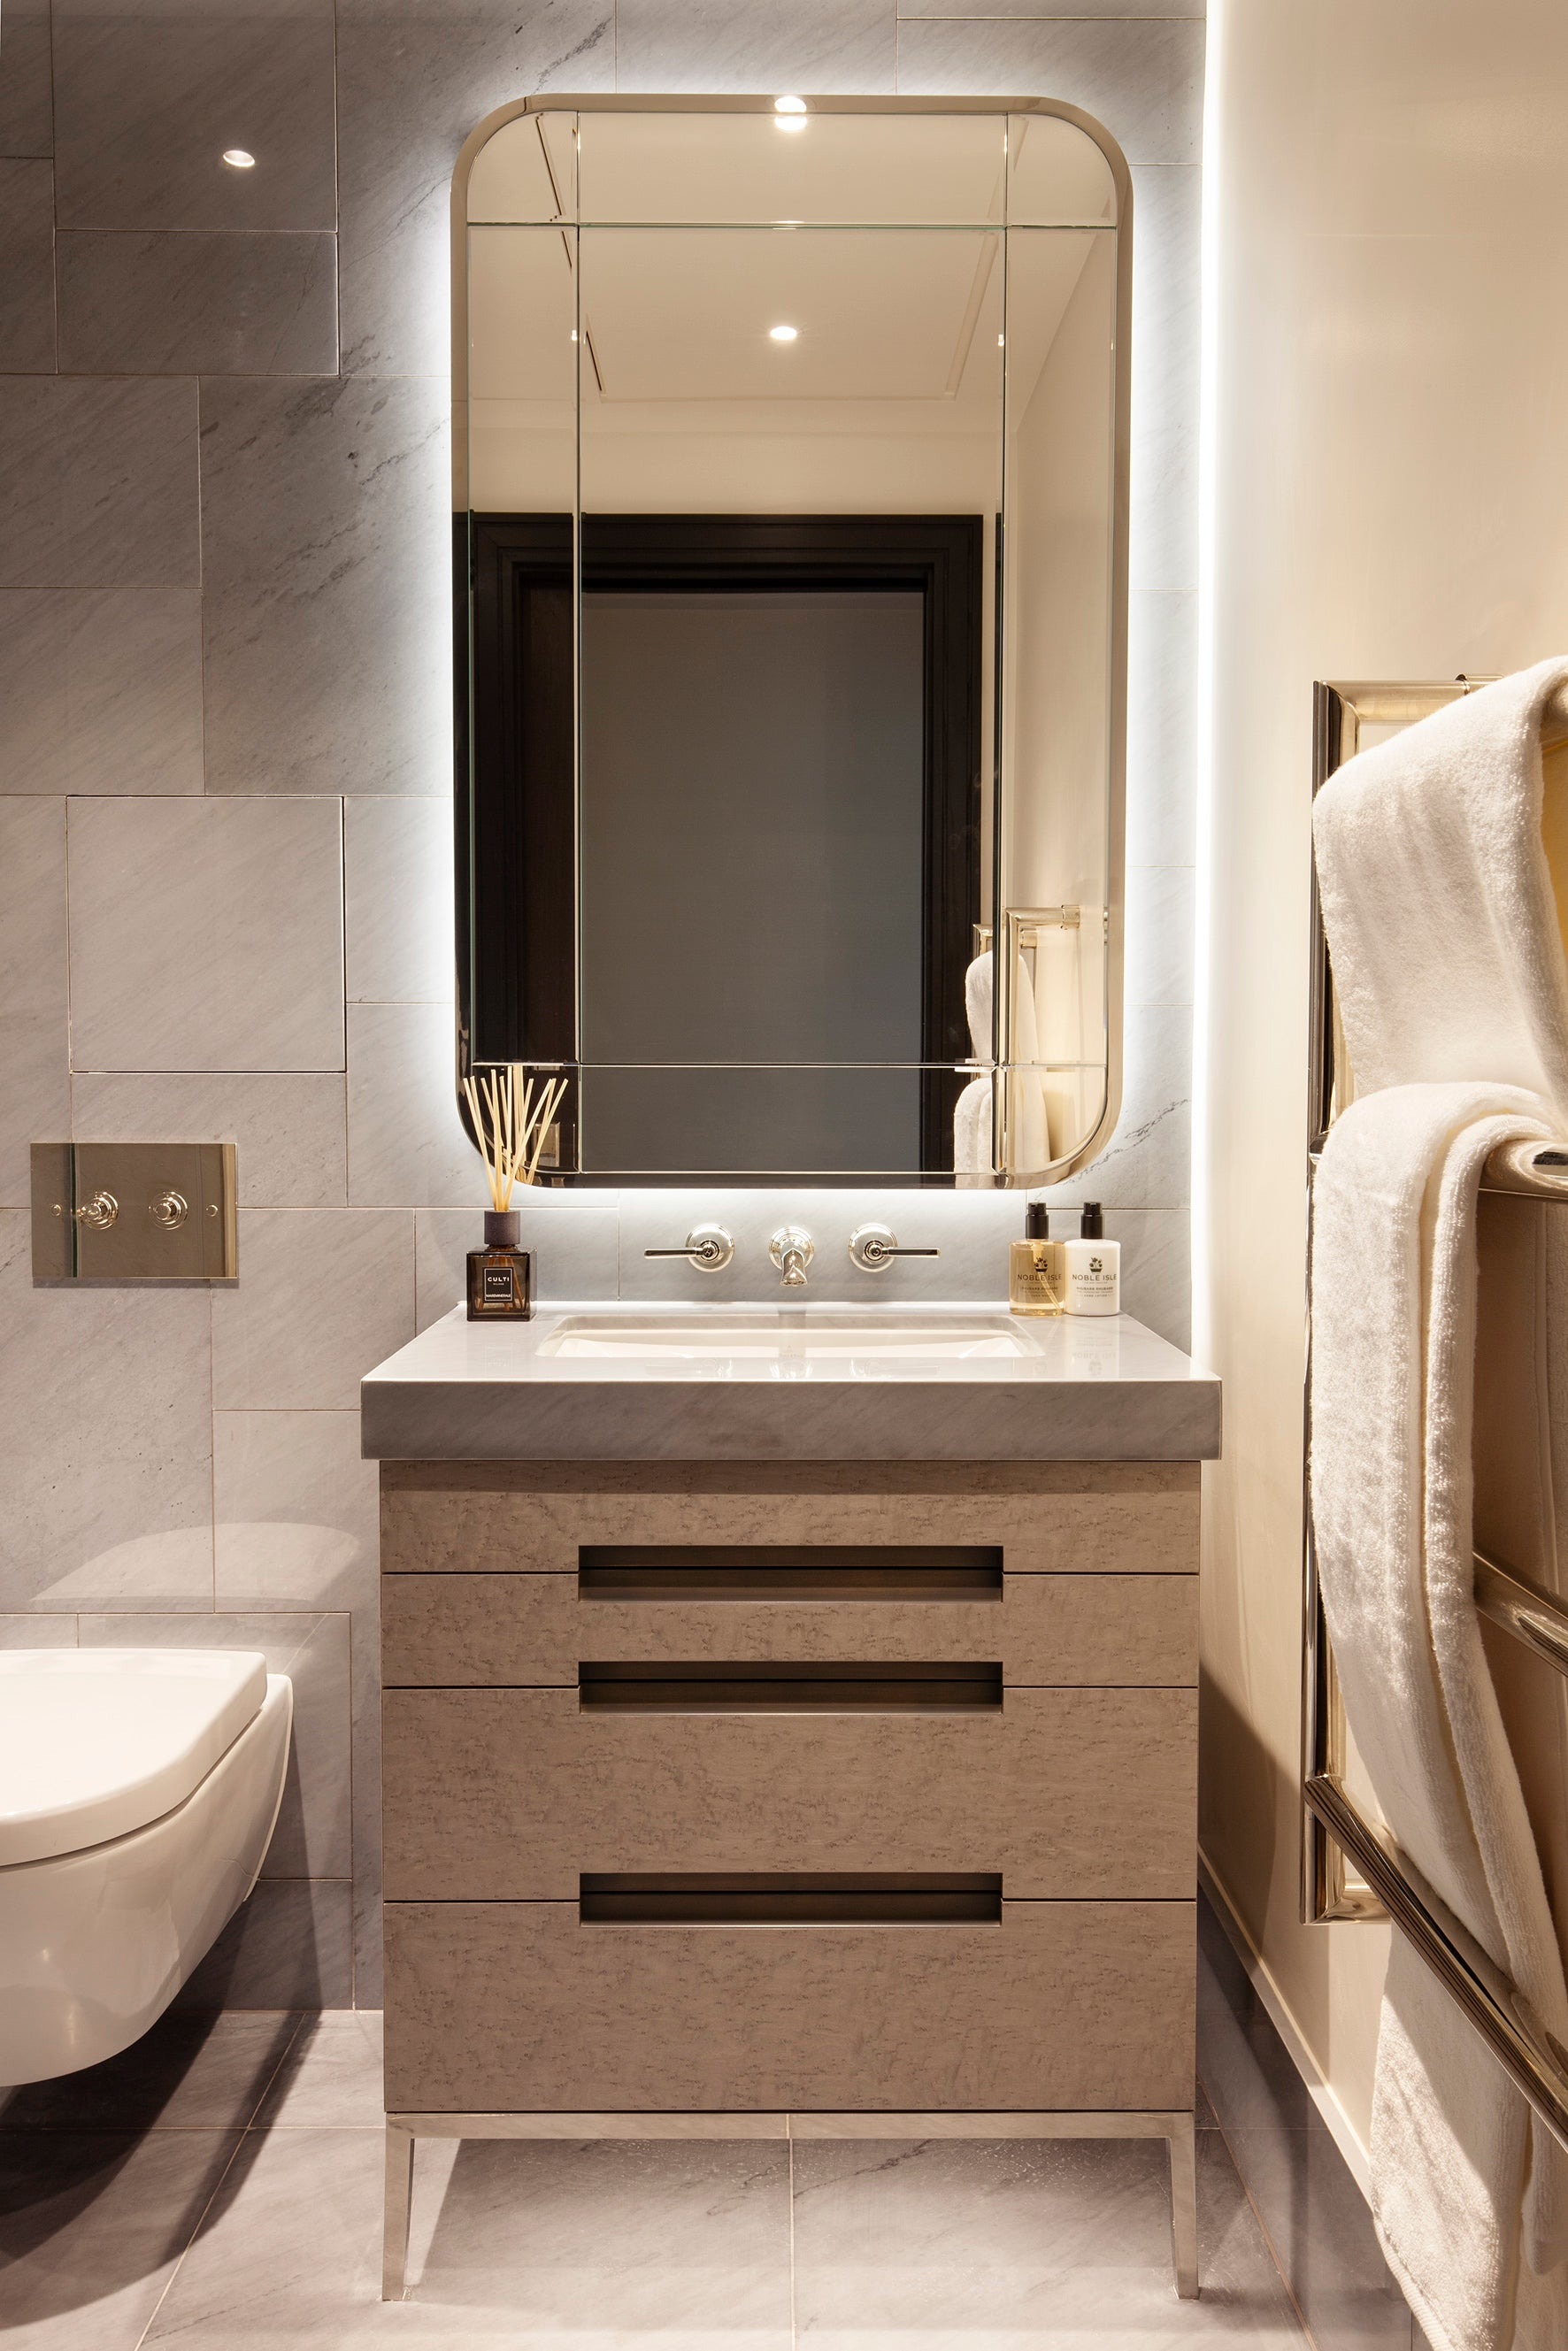 Bathroom - Elicyon design the interiors for the Chelsea Barracks show residence in London